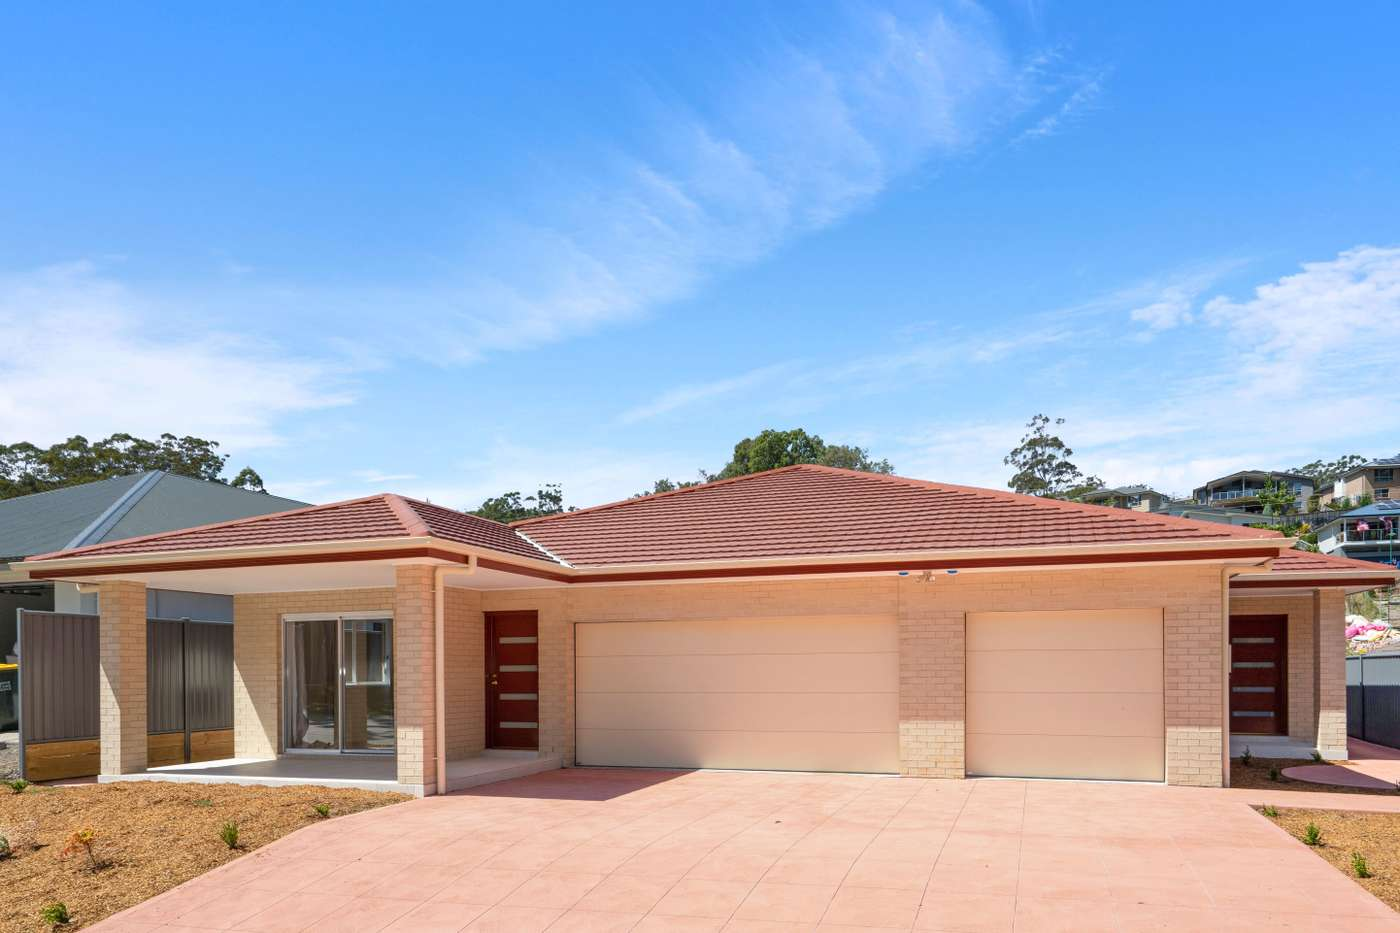 Main view of Homely house listing, 13 Elysian Place, Wyoming, NSW 2250